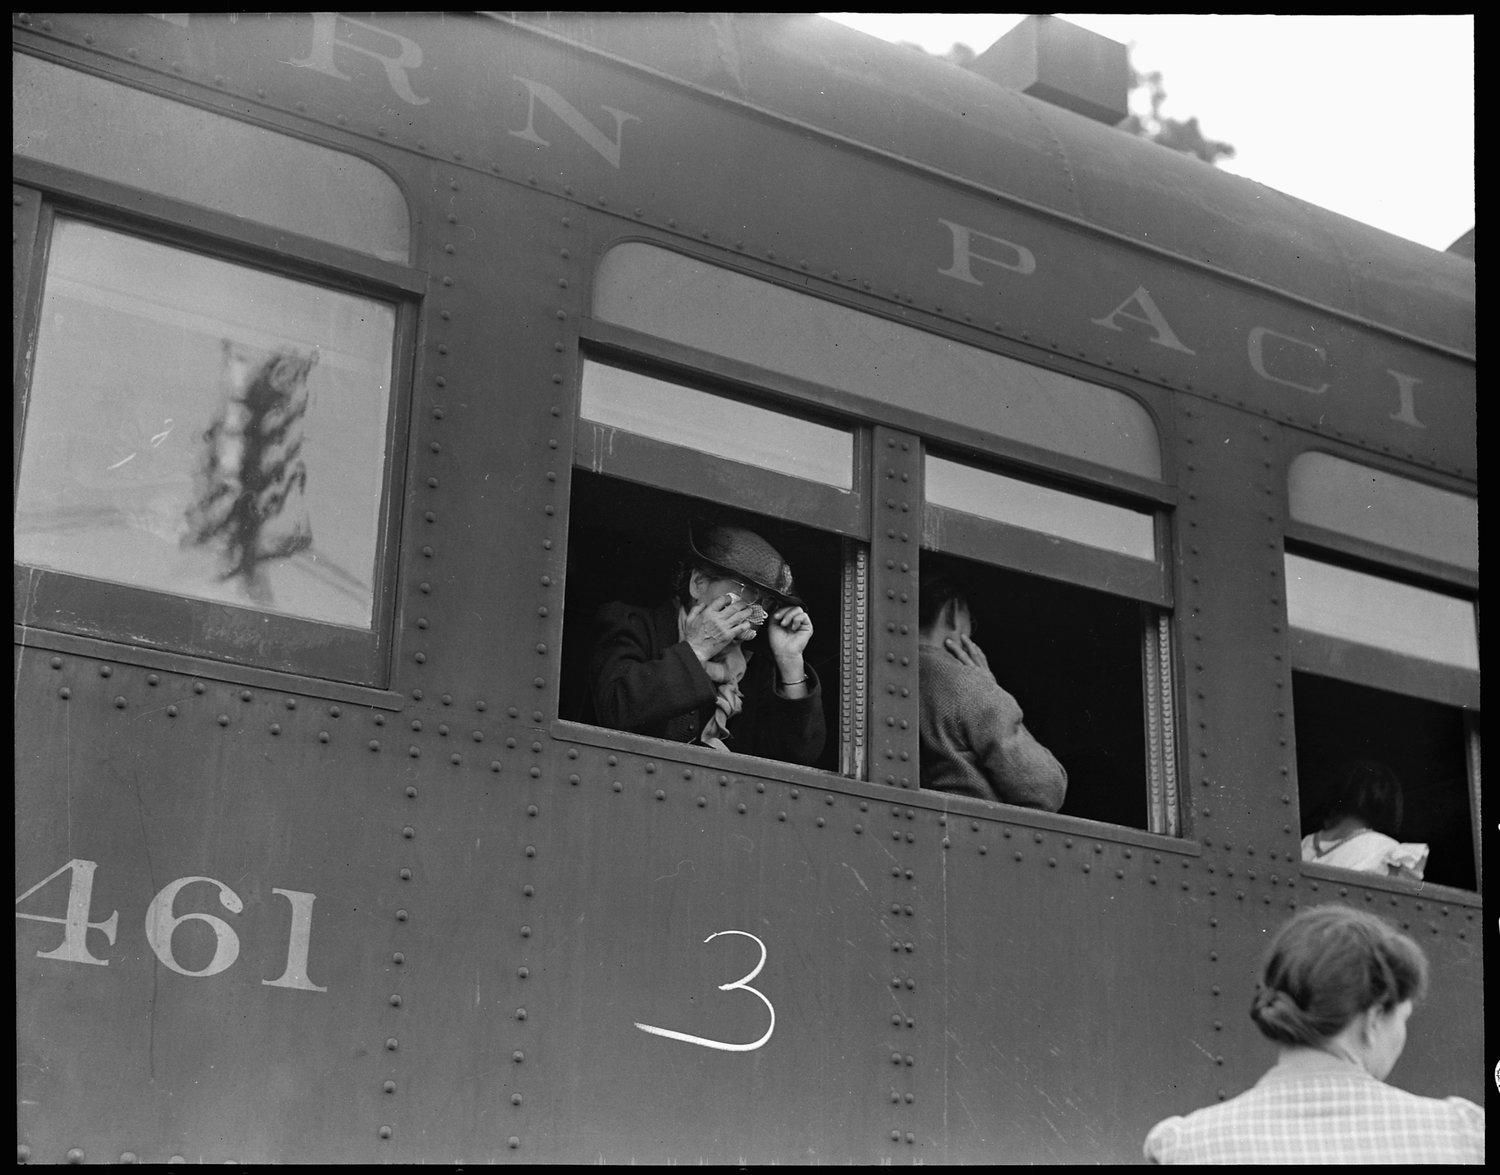 Woodland, Yolo County, California. Ten cars of evacuees of Japanese ancestry are now aboard and the doors are closed. Their Caucasian friends and the staff of the Wartime Civil Control Administration stations are watching the departure from the platform. Evacuees are leaving their homes and ranches, in a rich agricultural district, bound for Merced Assembly Center about 125 miles away.